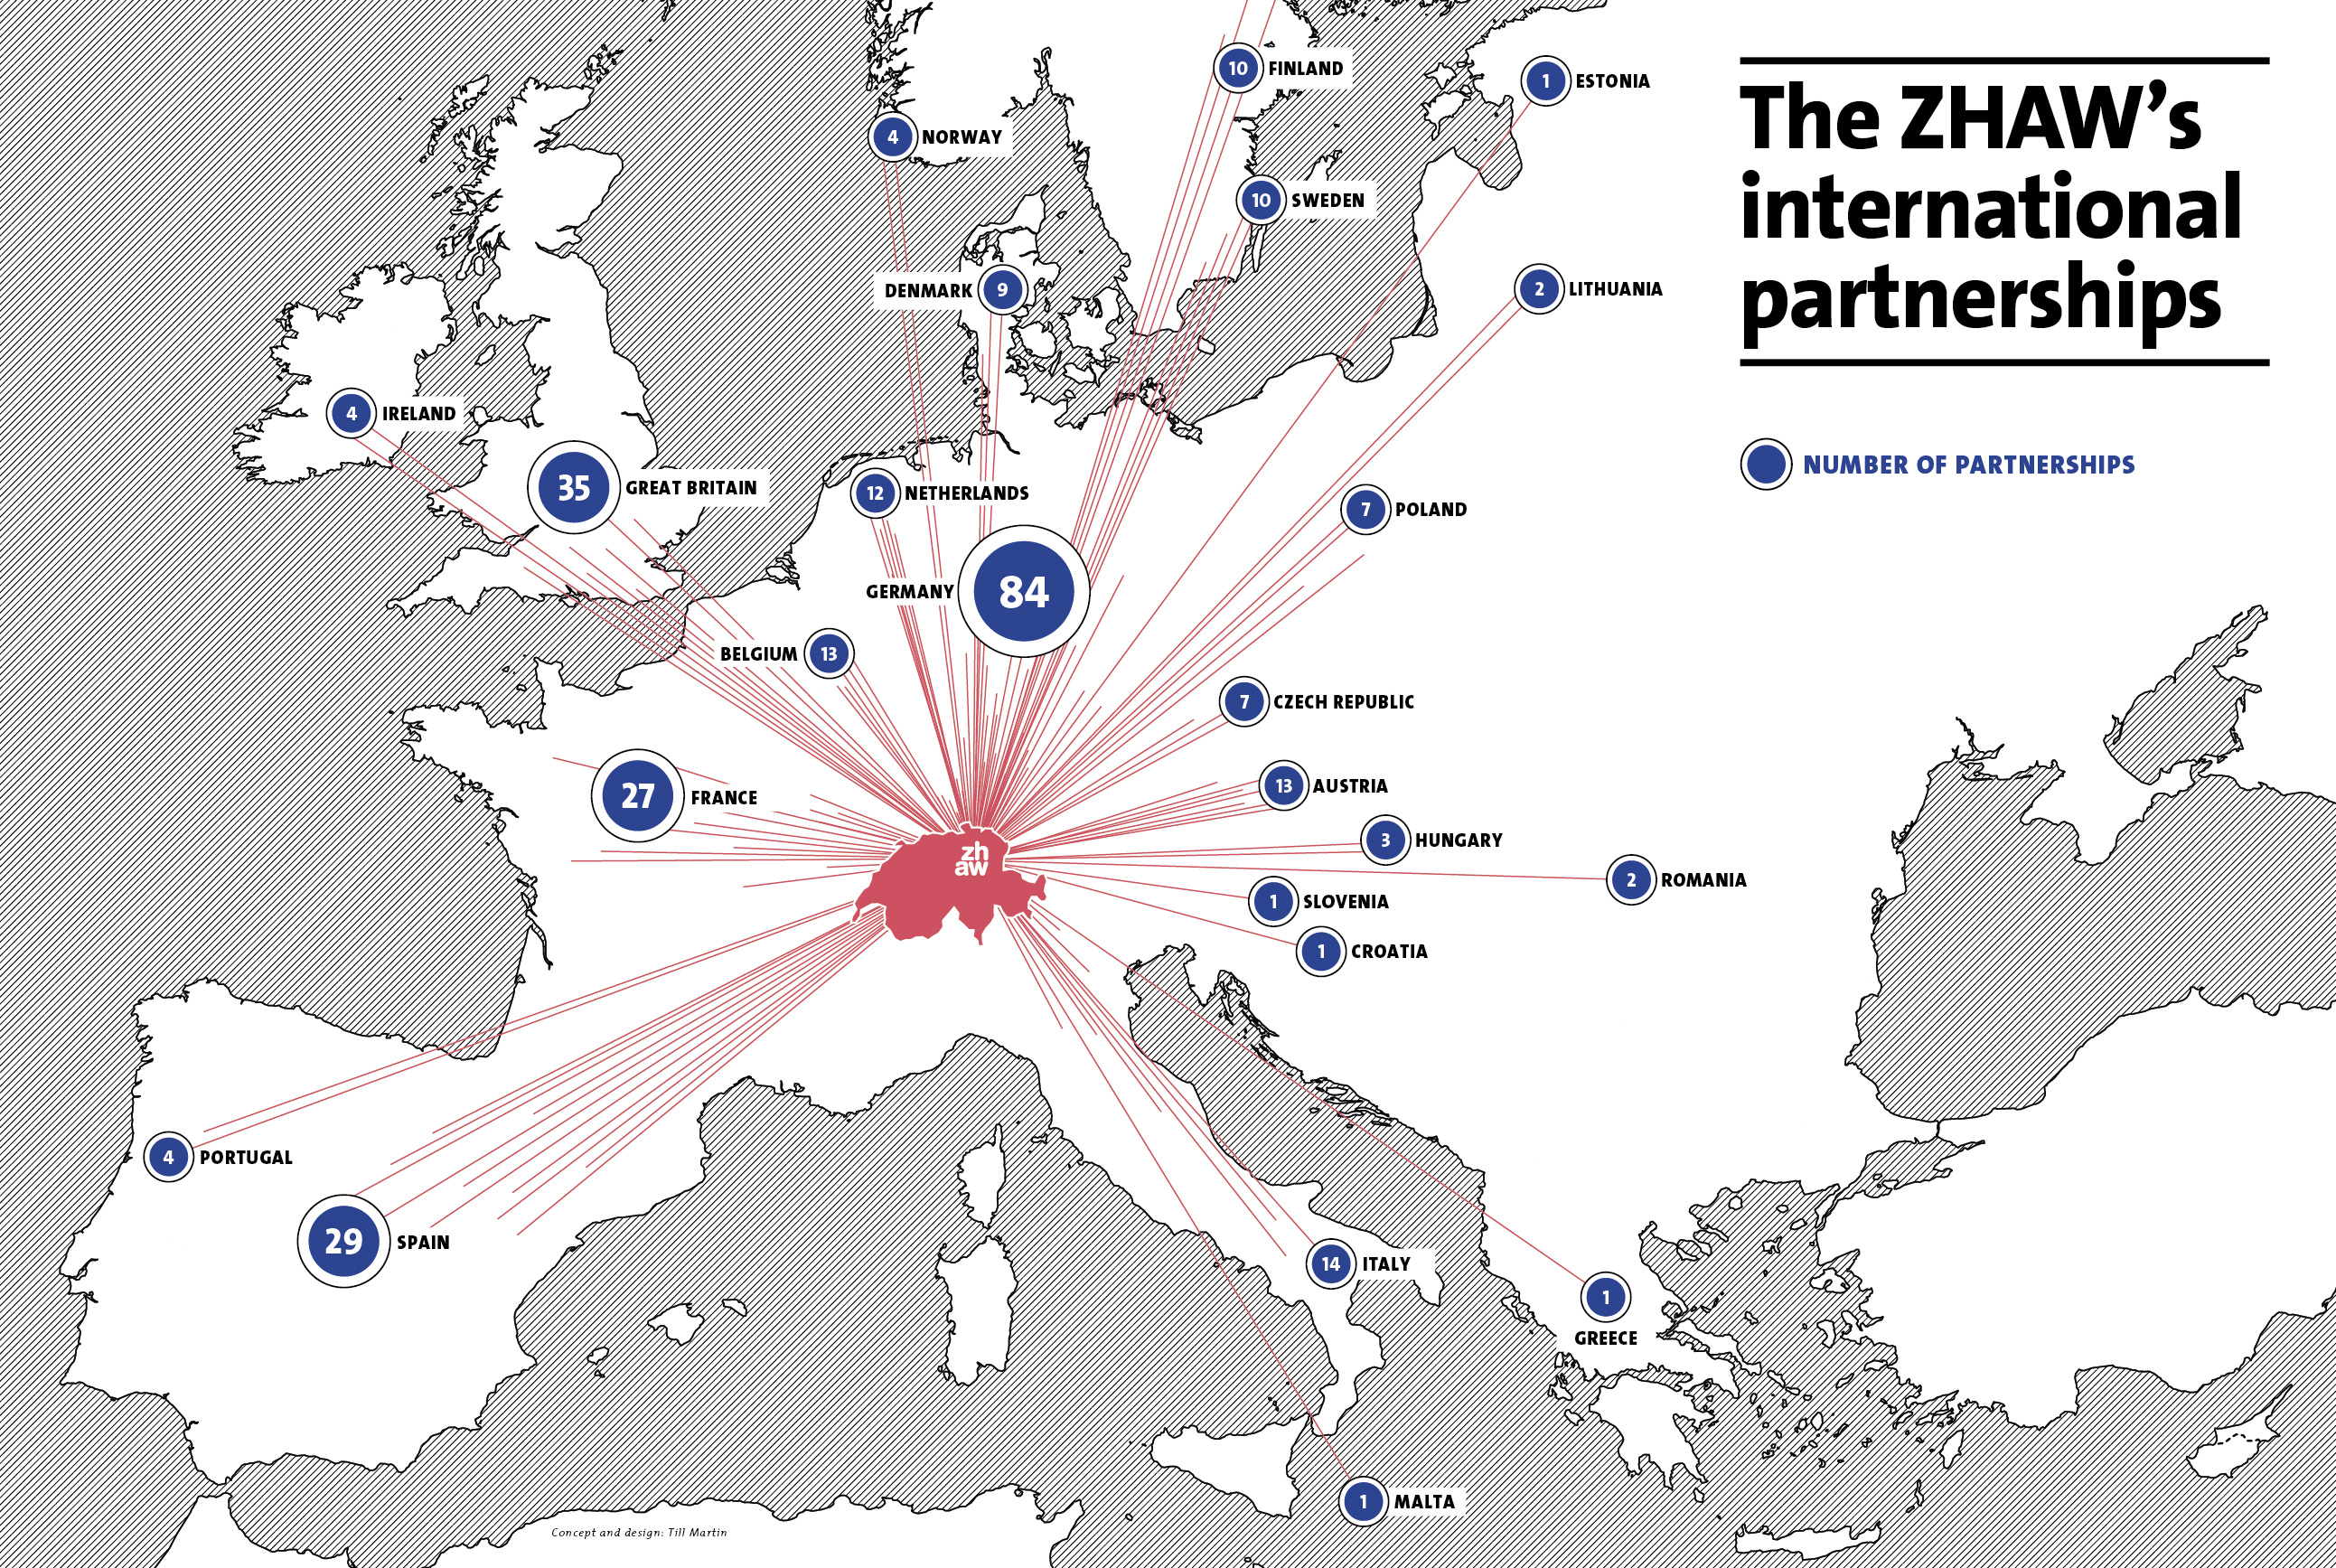 The ZHAW's network in Europe